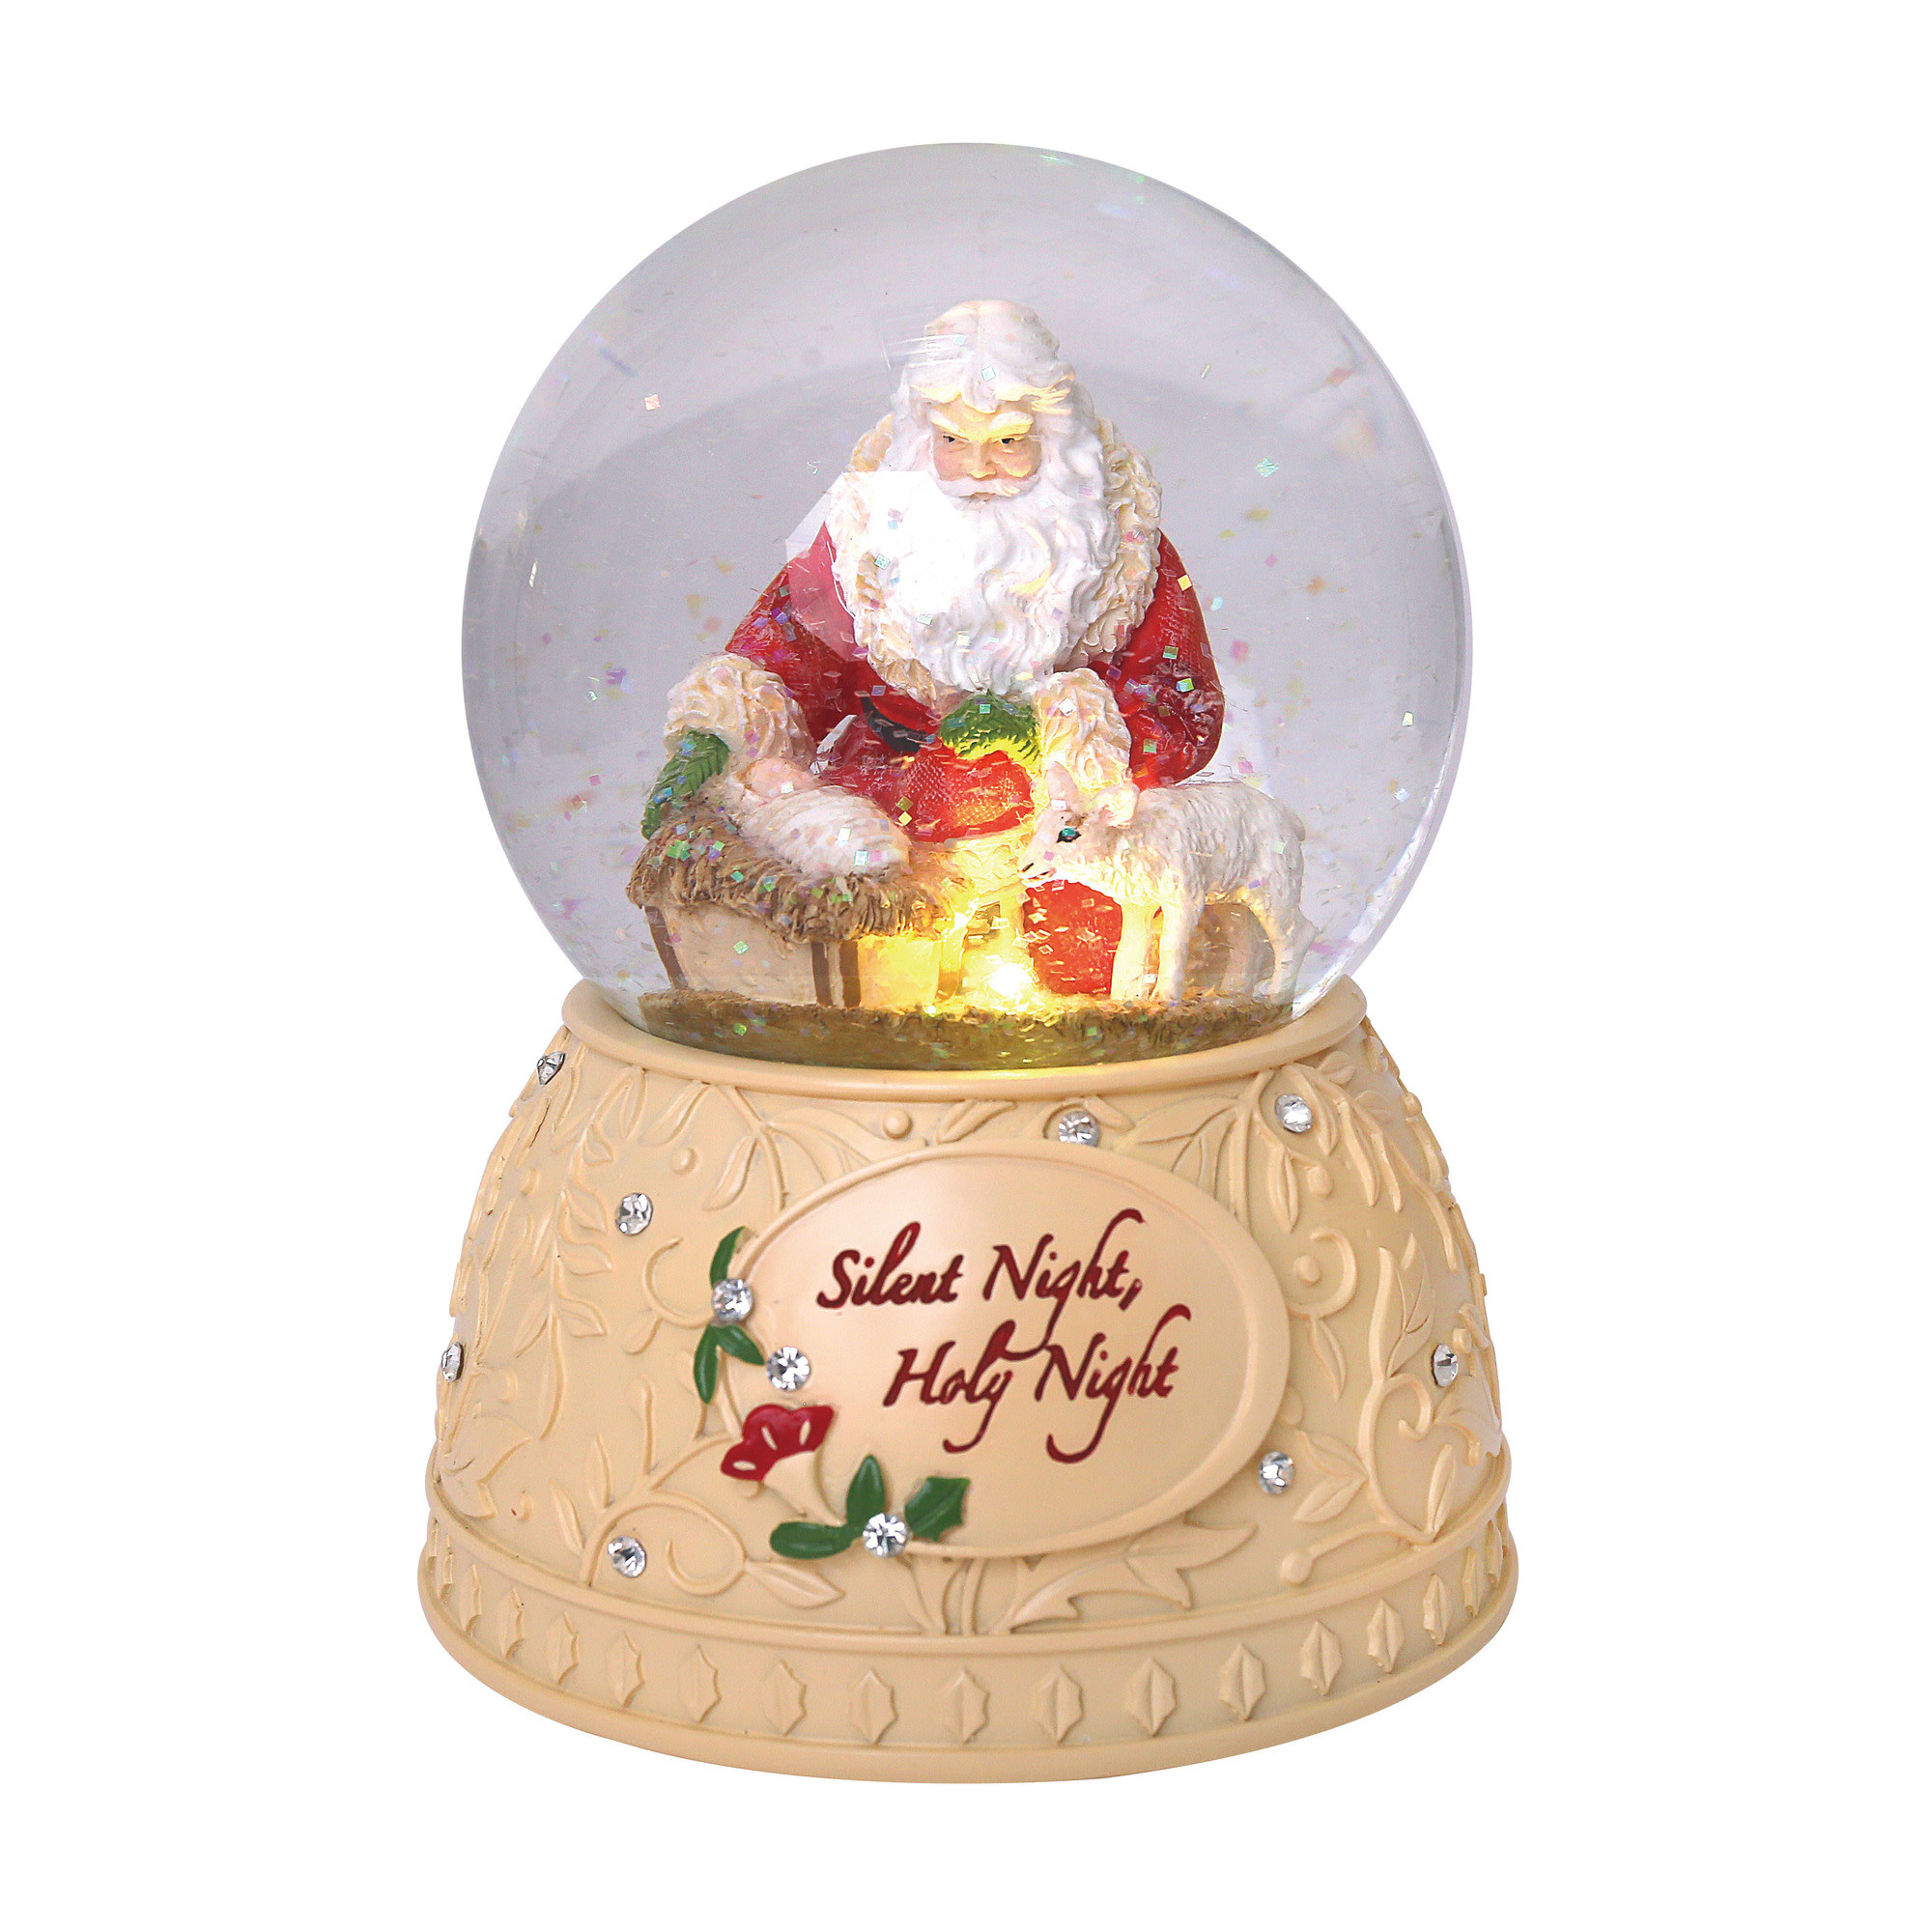 Silent Night Holy Night Snowglobe